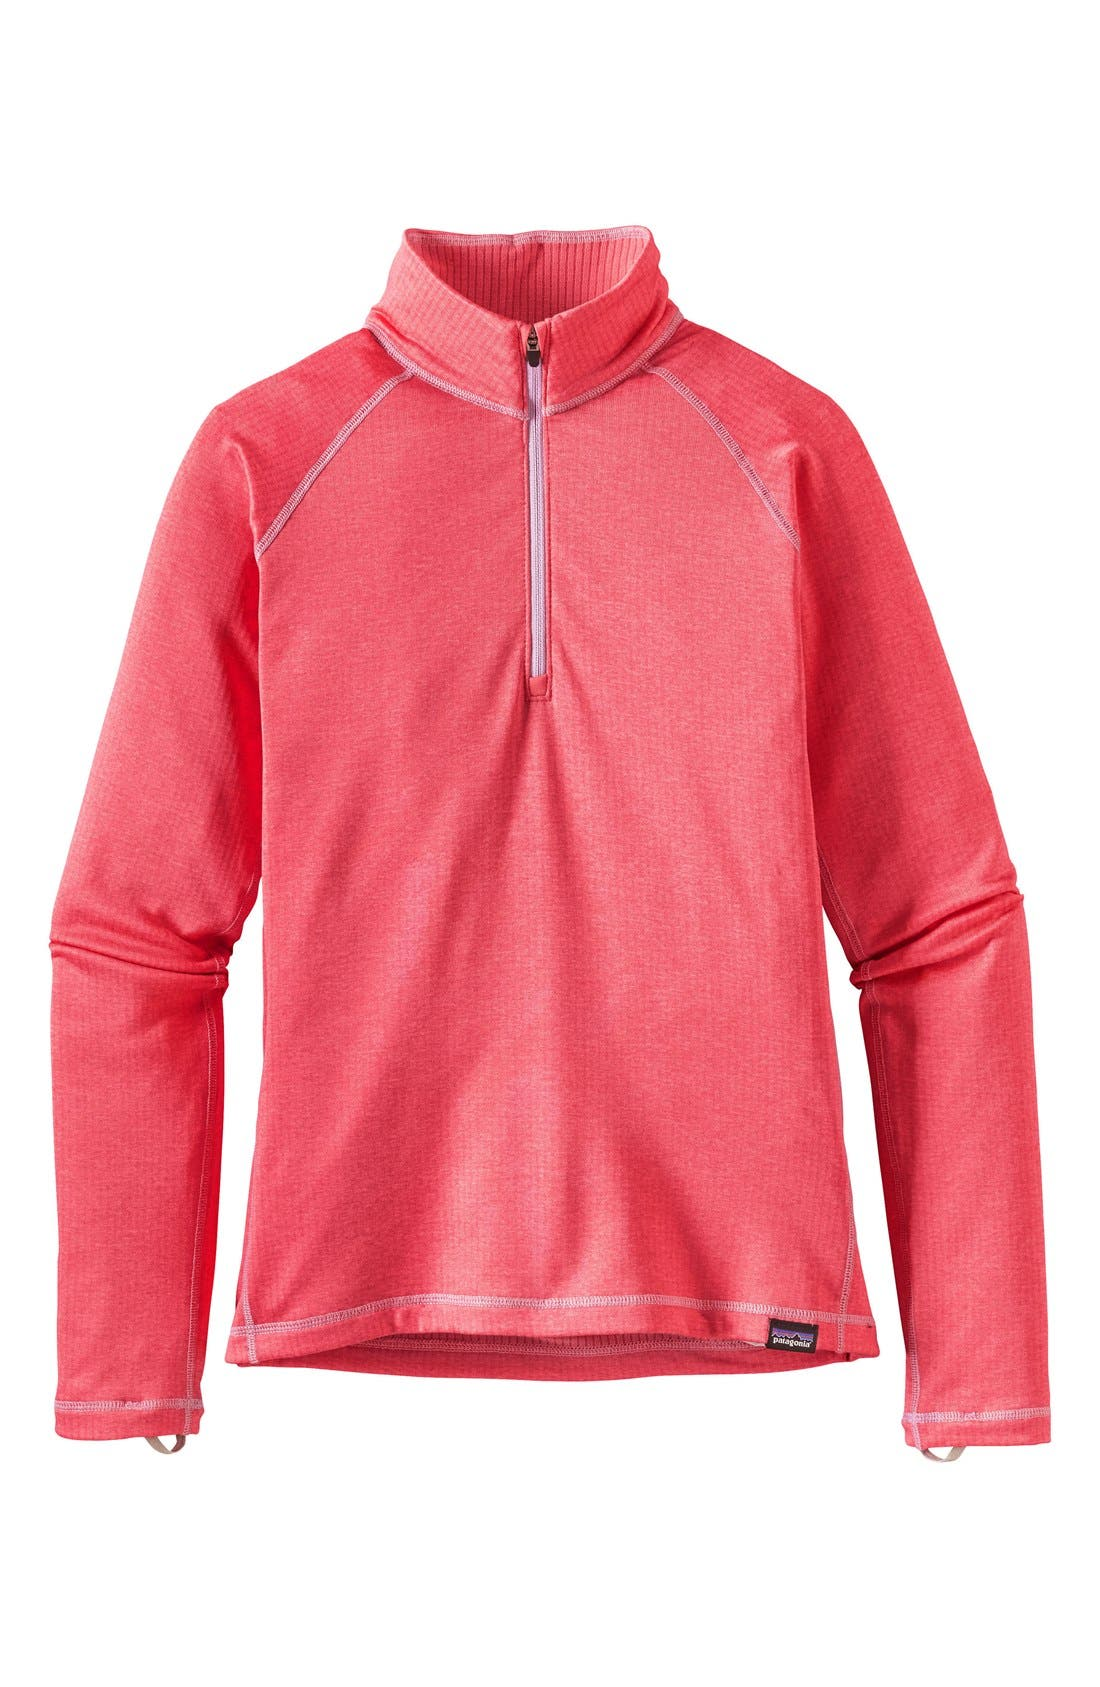 Capilene<sup>®</sup> Heavyweight Base Layer Pullover,                             Main thumbnail 5, color,